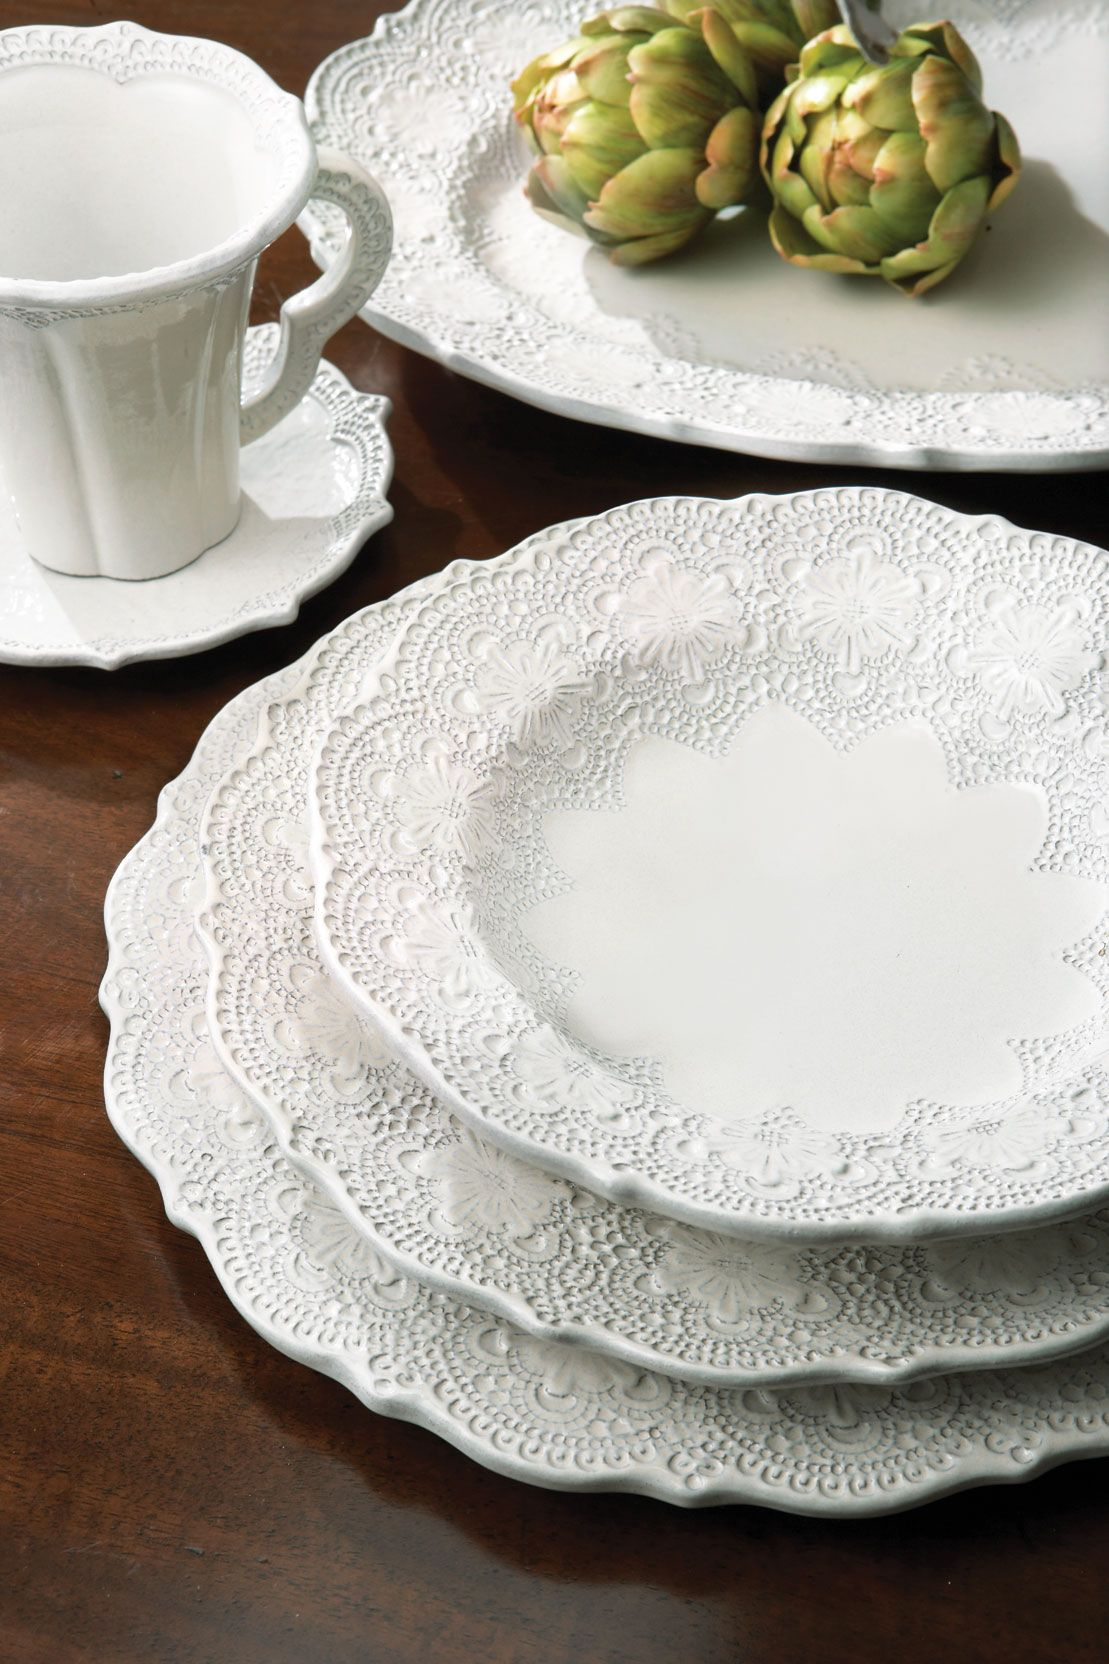 Arte Italica Merletto Antique Dinnerware - Latona\u0027s Specialty Foods and Gifts & For a romantic table setting I like the lacey look of the Merletto ...